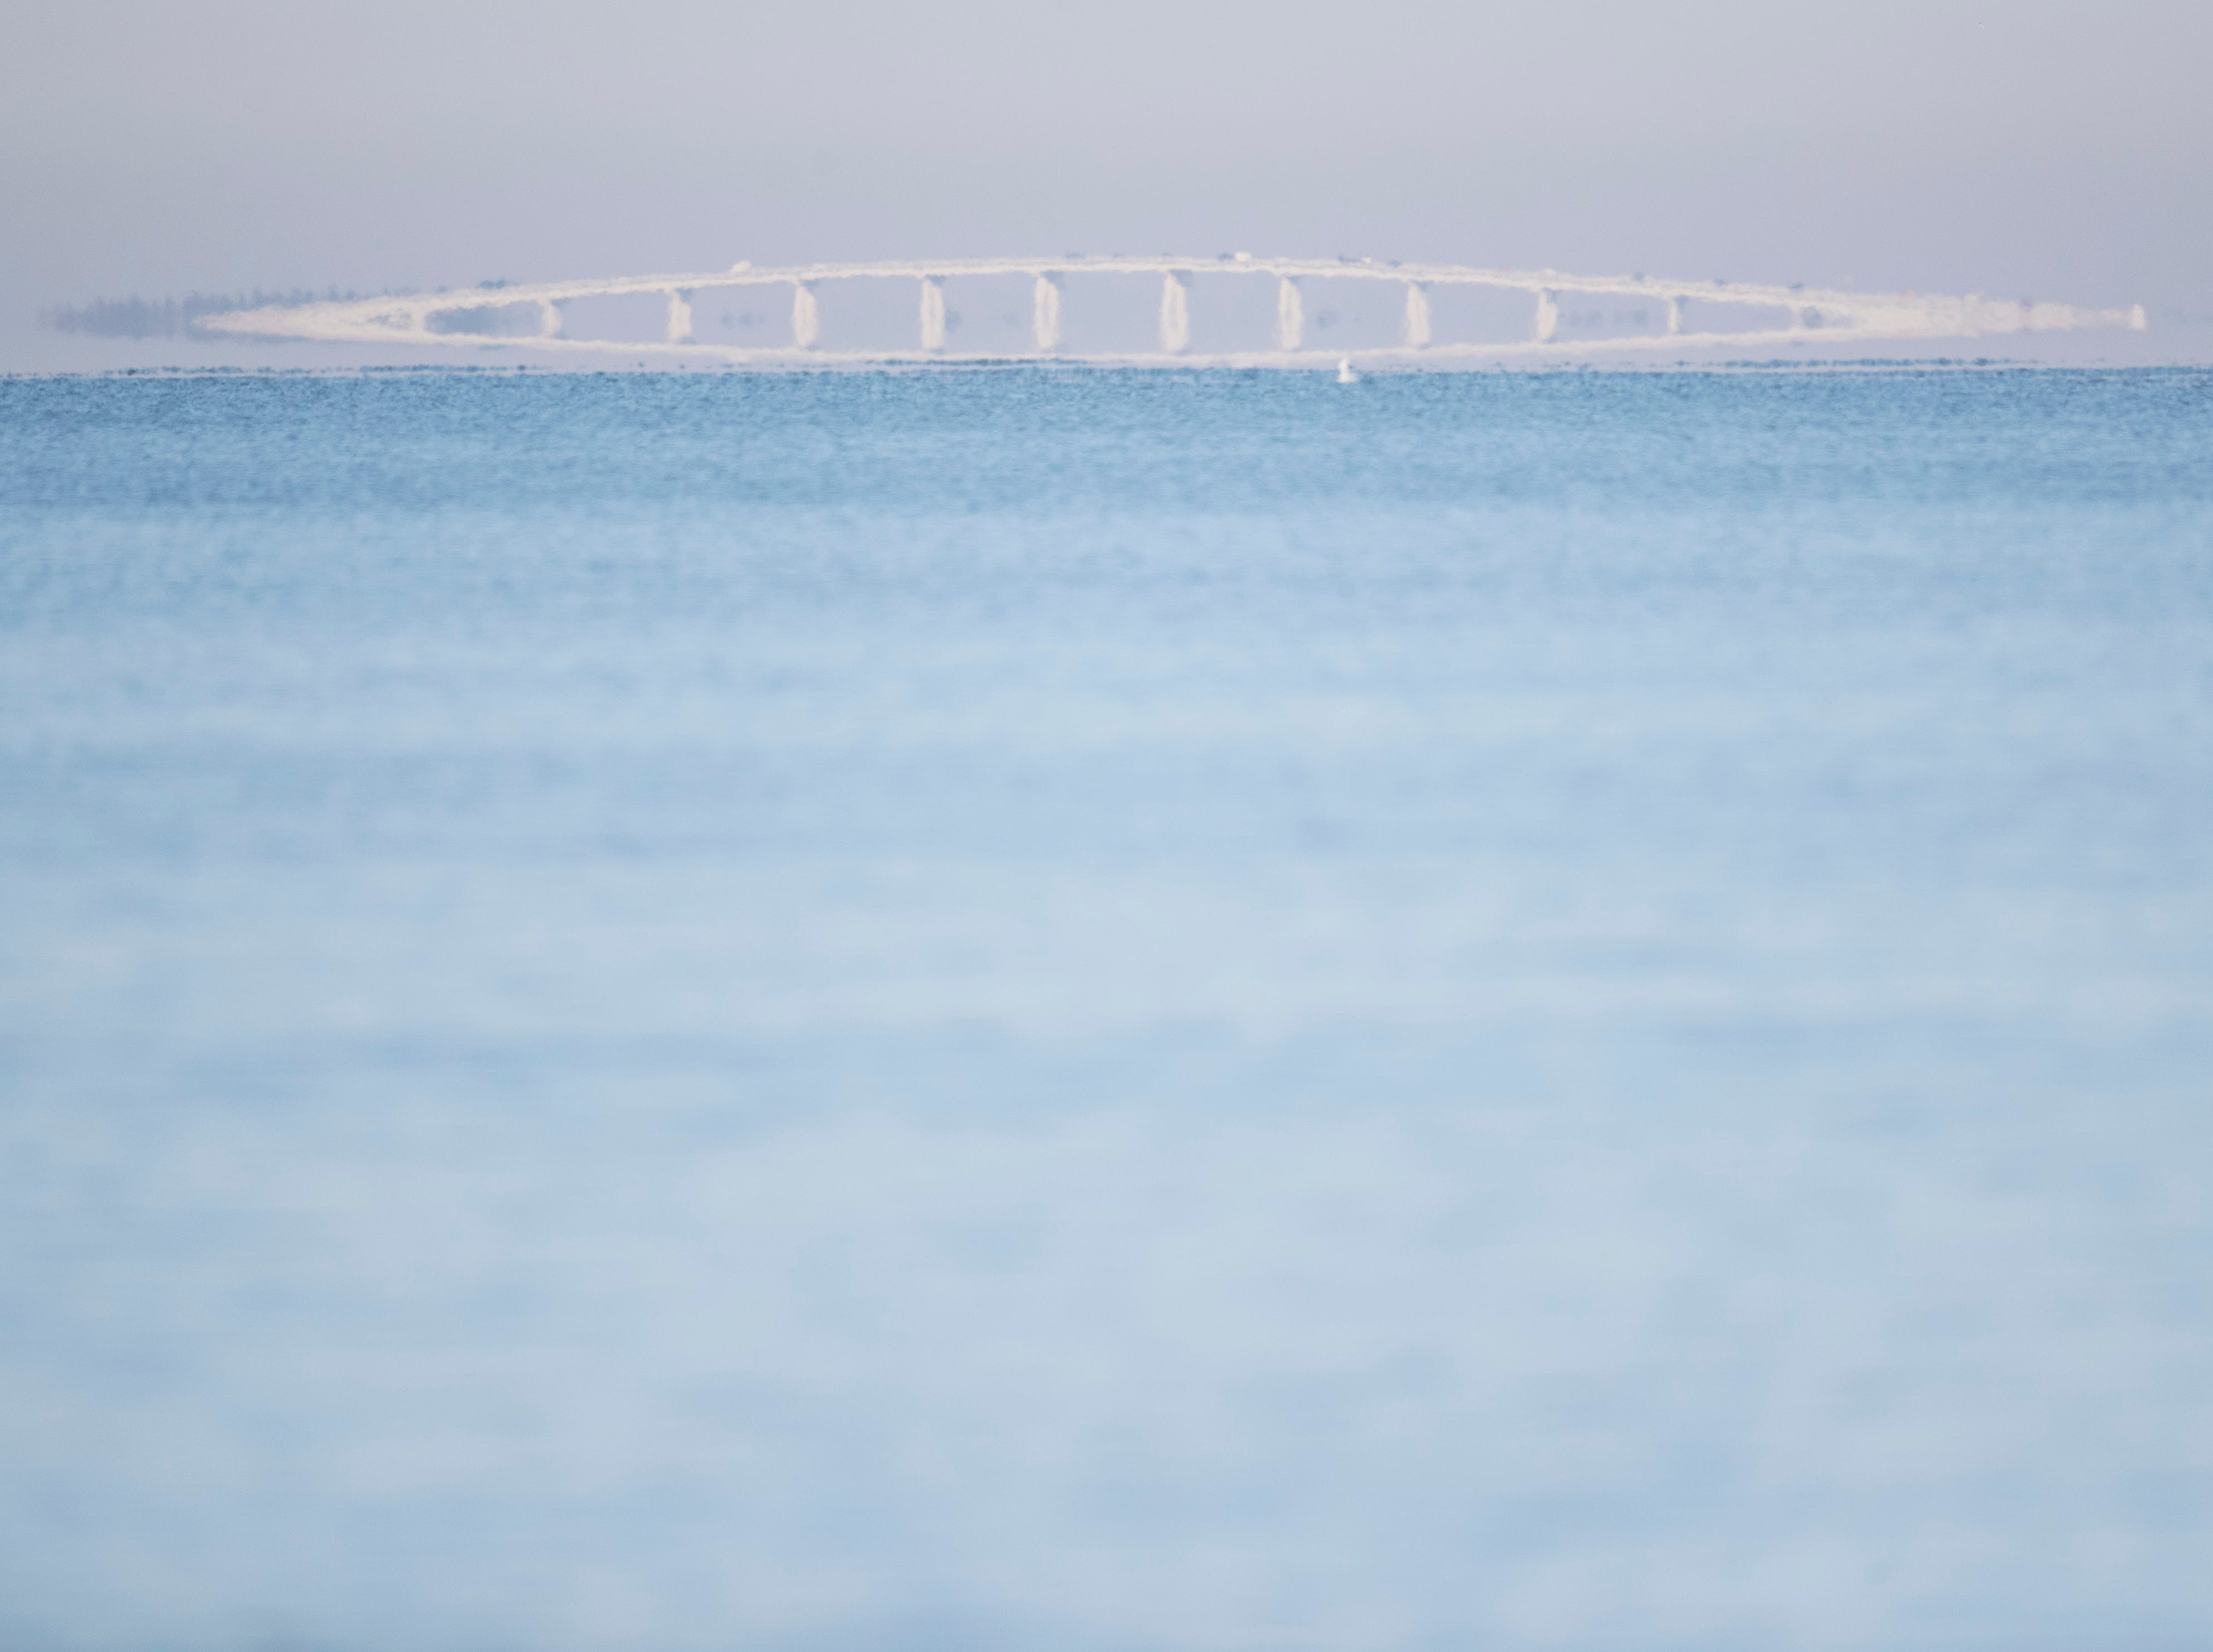 The Sanibel Causeway is seen shrouded in fog as photographed from the south end of Fort Myers Beach on Tuesday 1/29/2019. Southwest Florida is still seeing patchy reports of red tide, mostly in the northern region like northern Lee County and Charlotte County. The numbers are way down or non existent in this area.